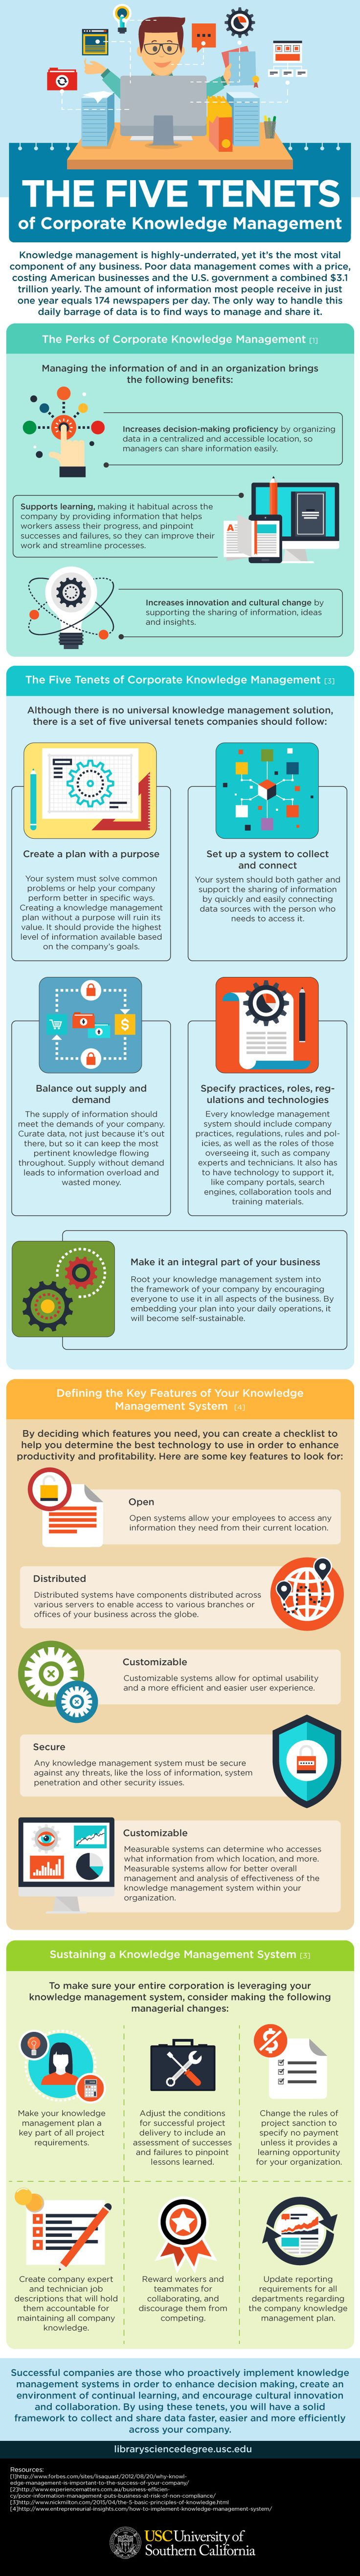 best ideas about knowledge management business a guide to corporate knowledge management infographic